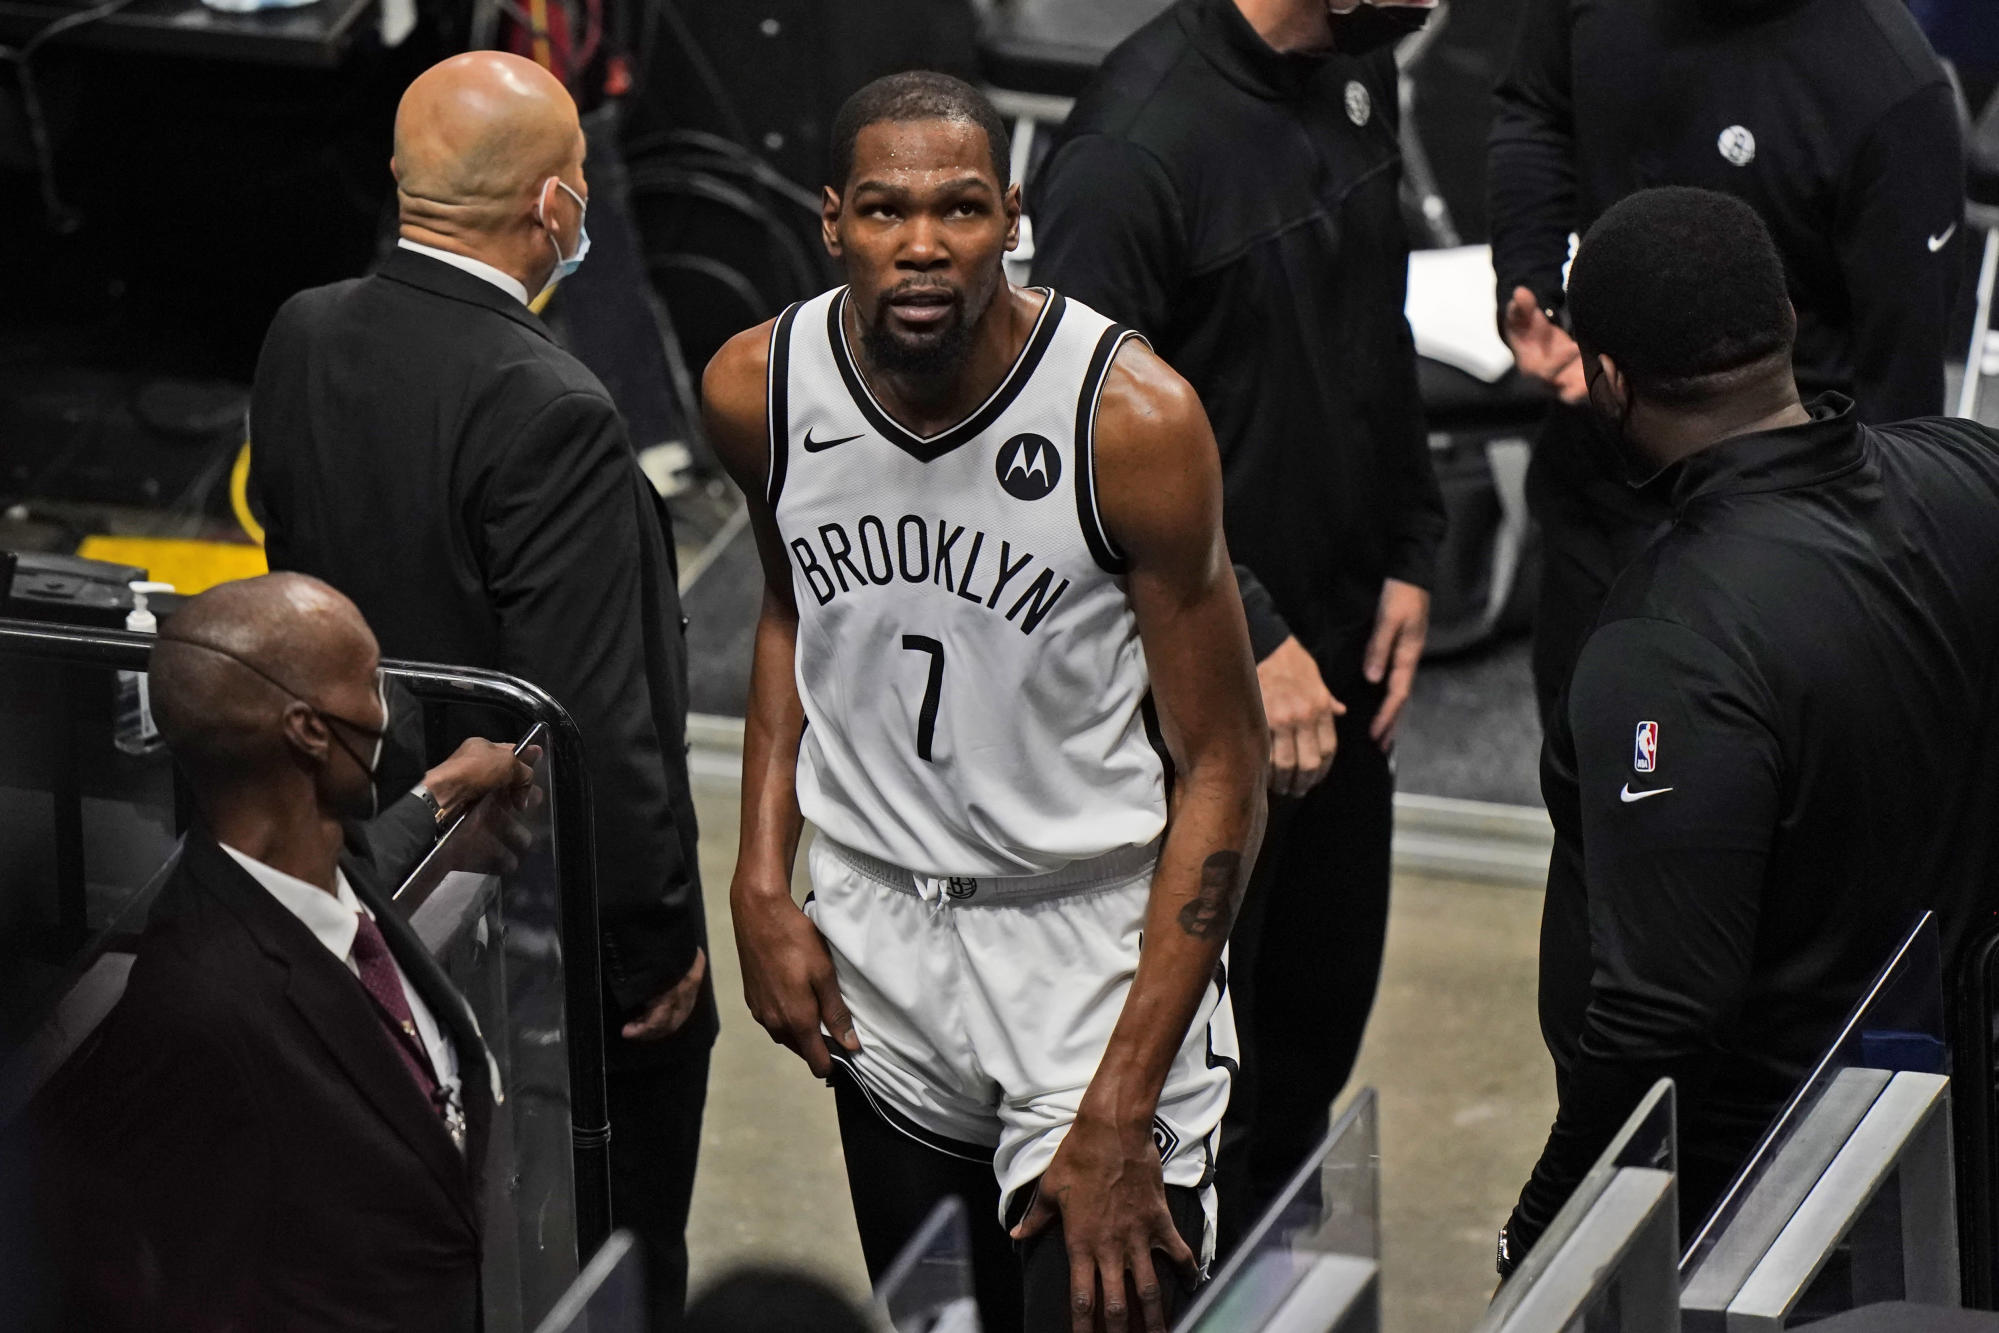 durant-back-for-nets-after-3-game-absence-with-thigh-injury